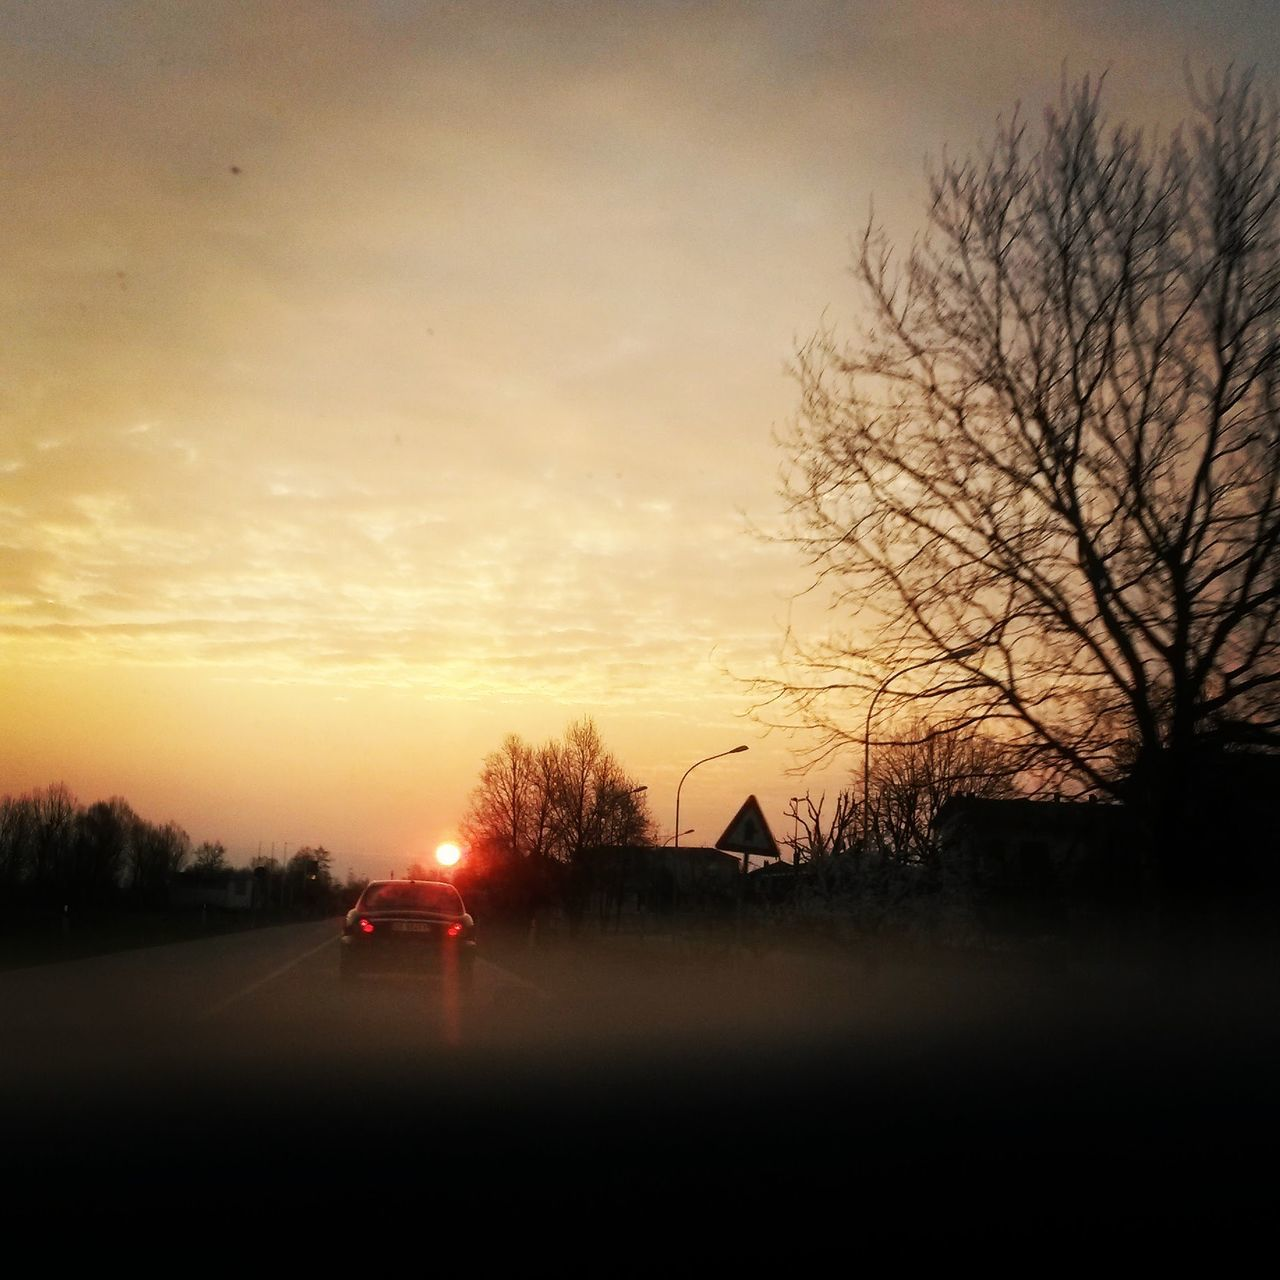 sunset, bare tree, sky, sun, tree, silhouette, no people, car, nature, road, beauty in nature, scenics, outdoors, day